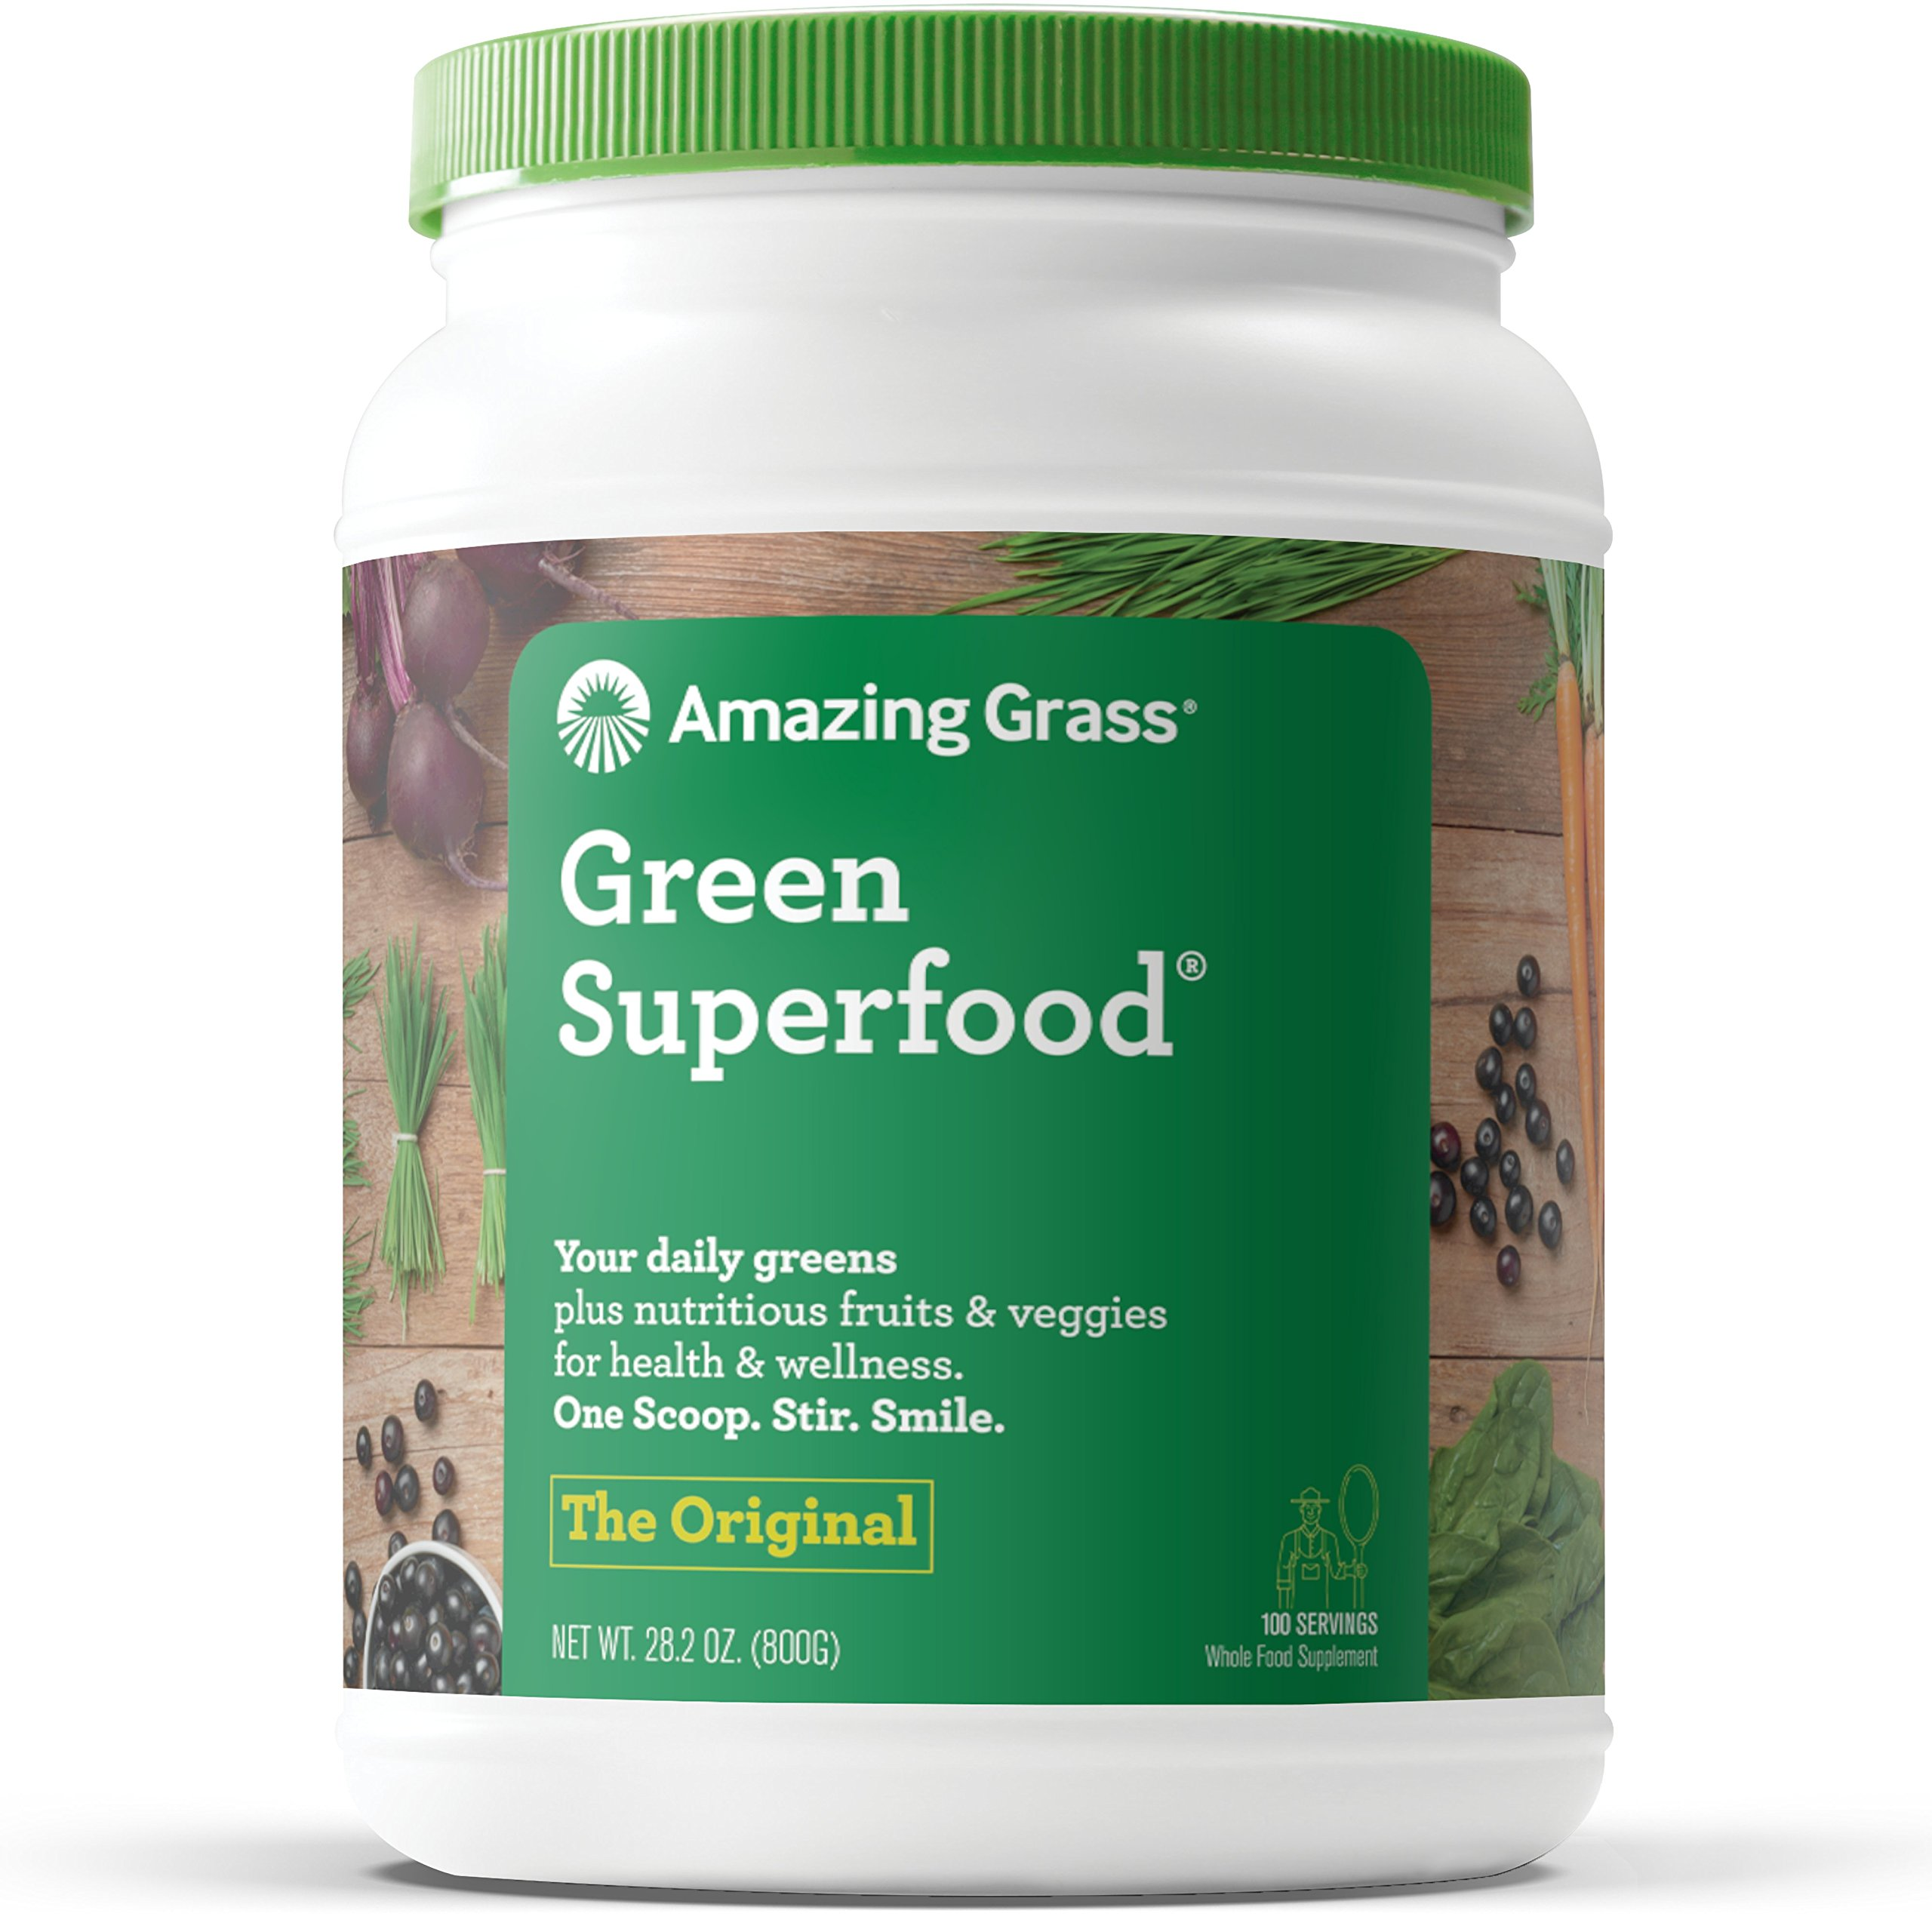 Amazing Grass Green Superfood: Organic Wheat Grass and 7 Super Greens Powder, 2 servings of Fruits & Veggies per scoop, Original Flavor, 100 Servings by Amazing Grass